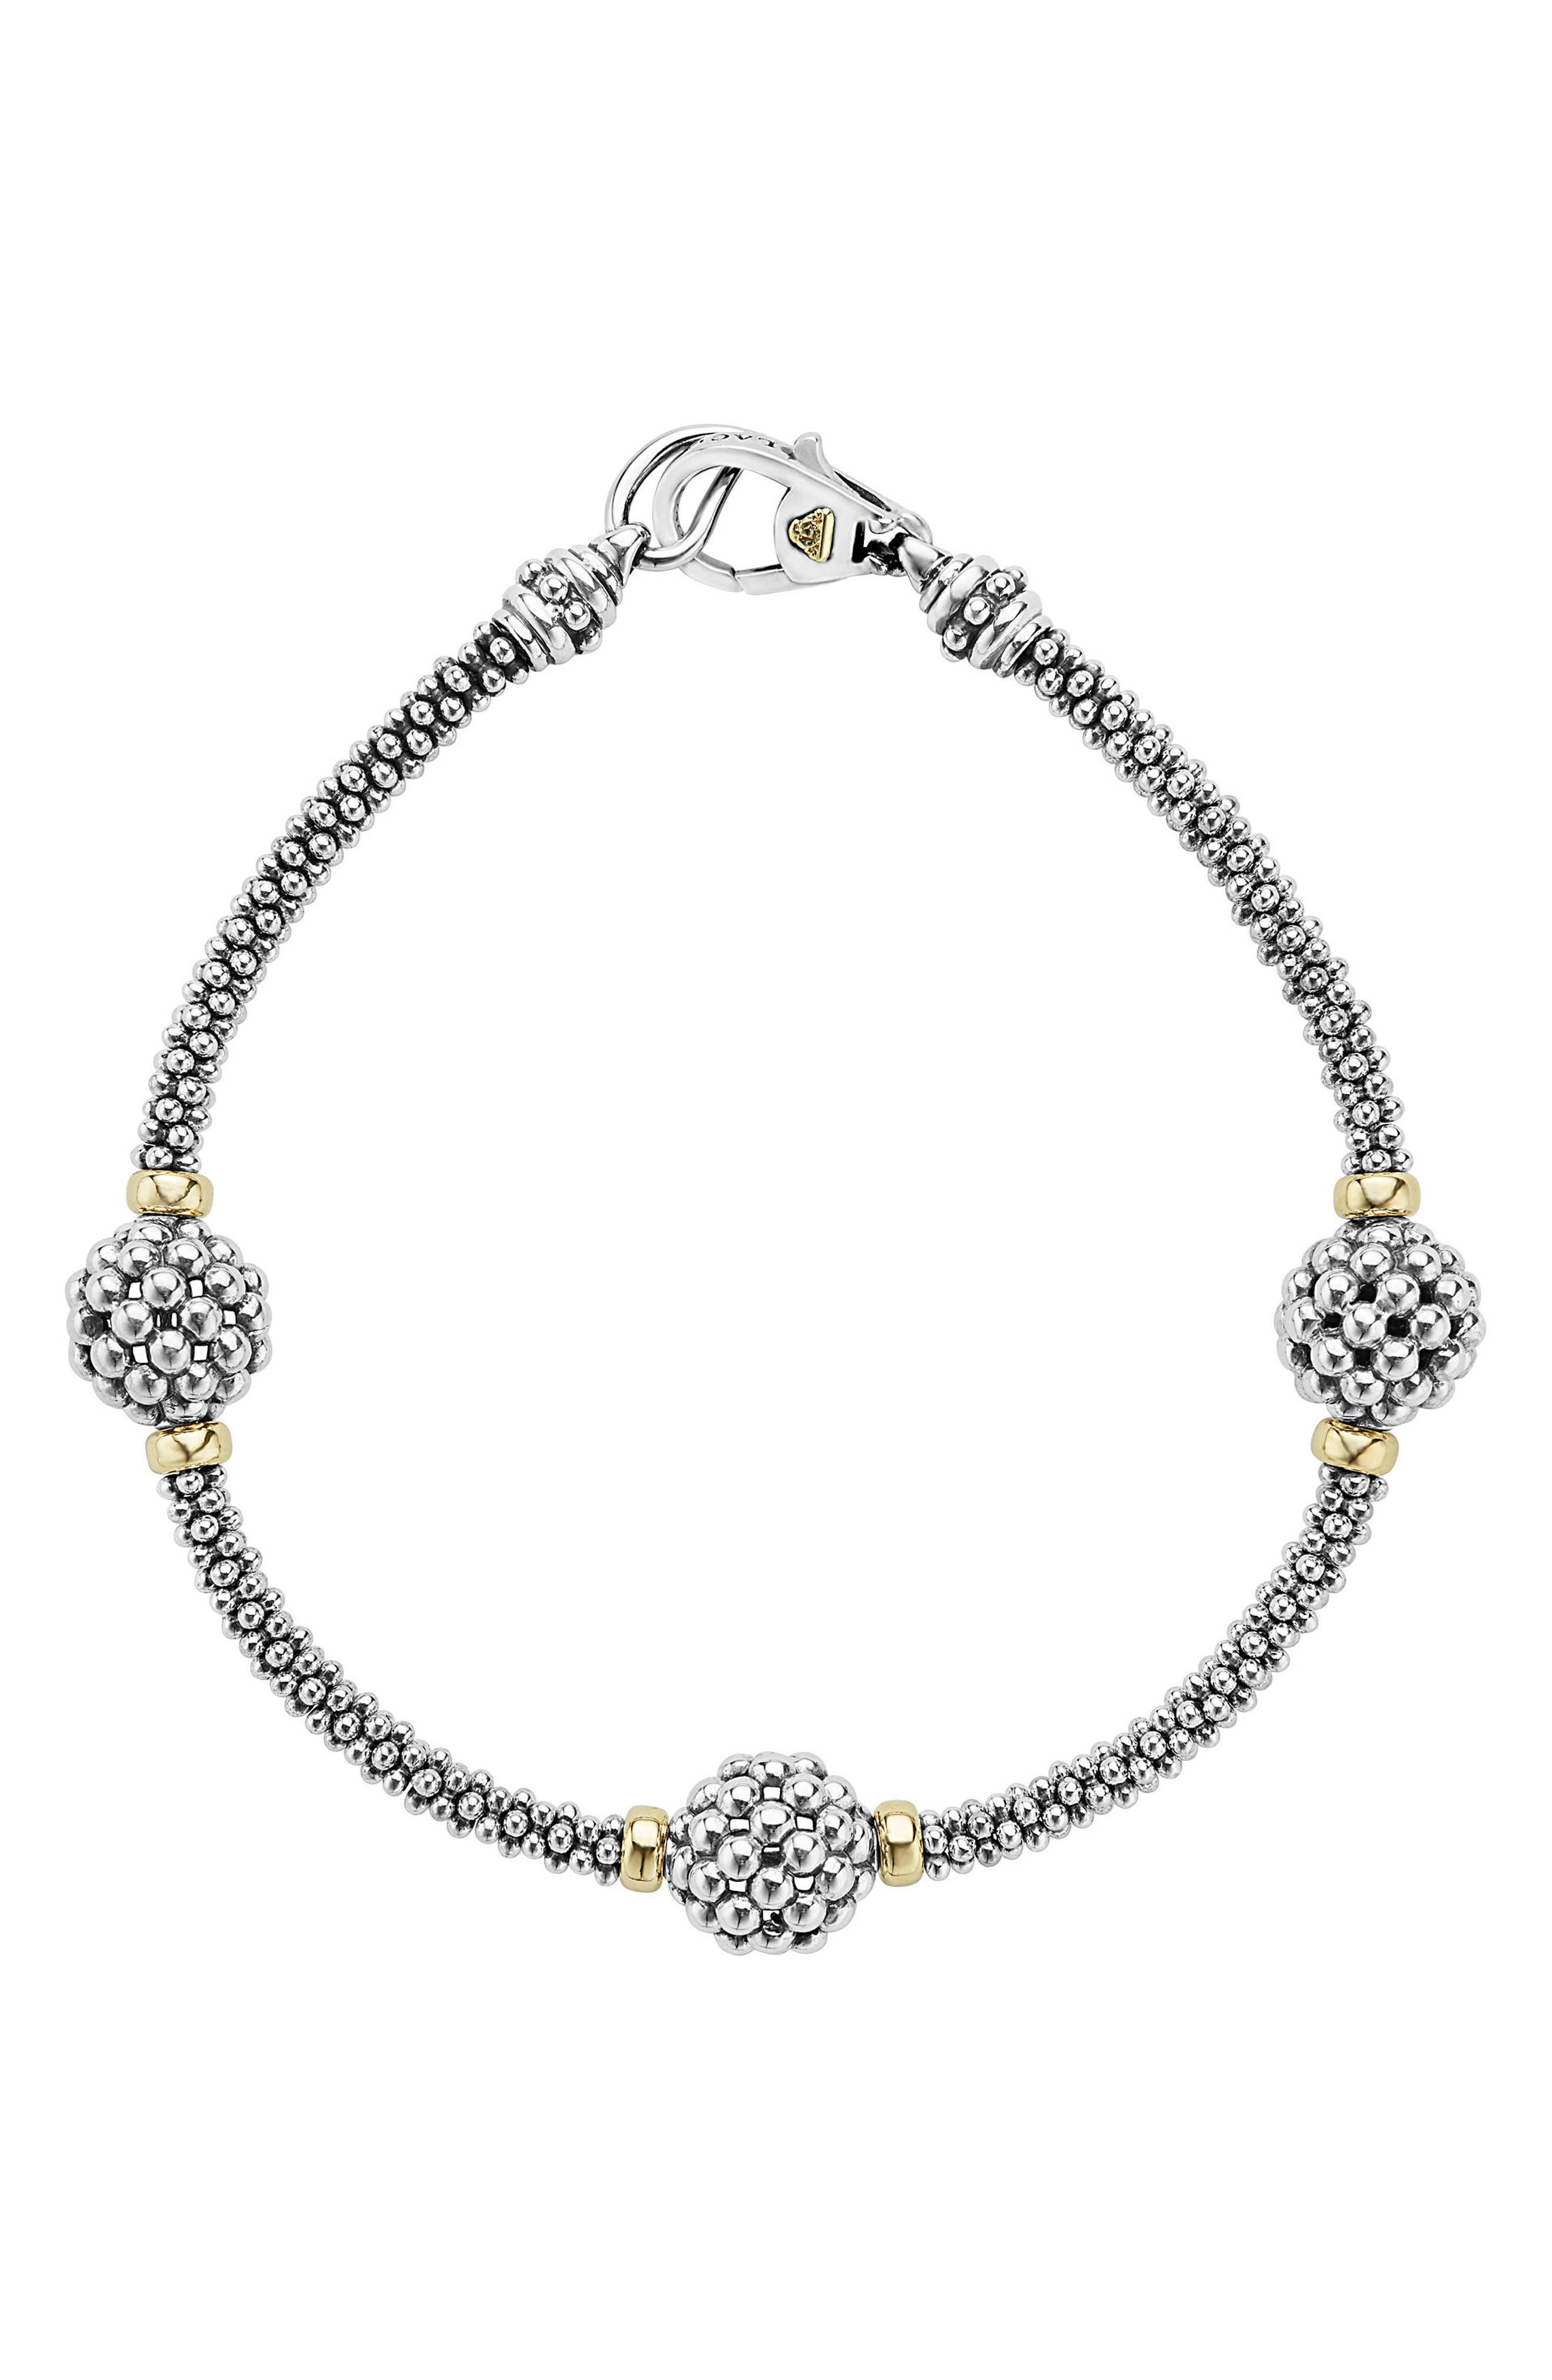 'Caviar Forever' Ball Station Bracelet,                             Alternate thumbnail 2, color,                             SILVER/ GOLD